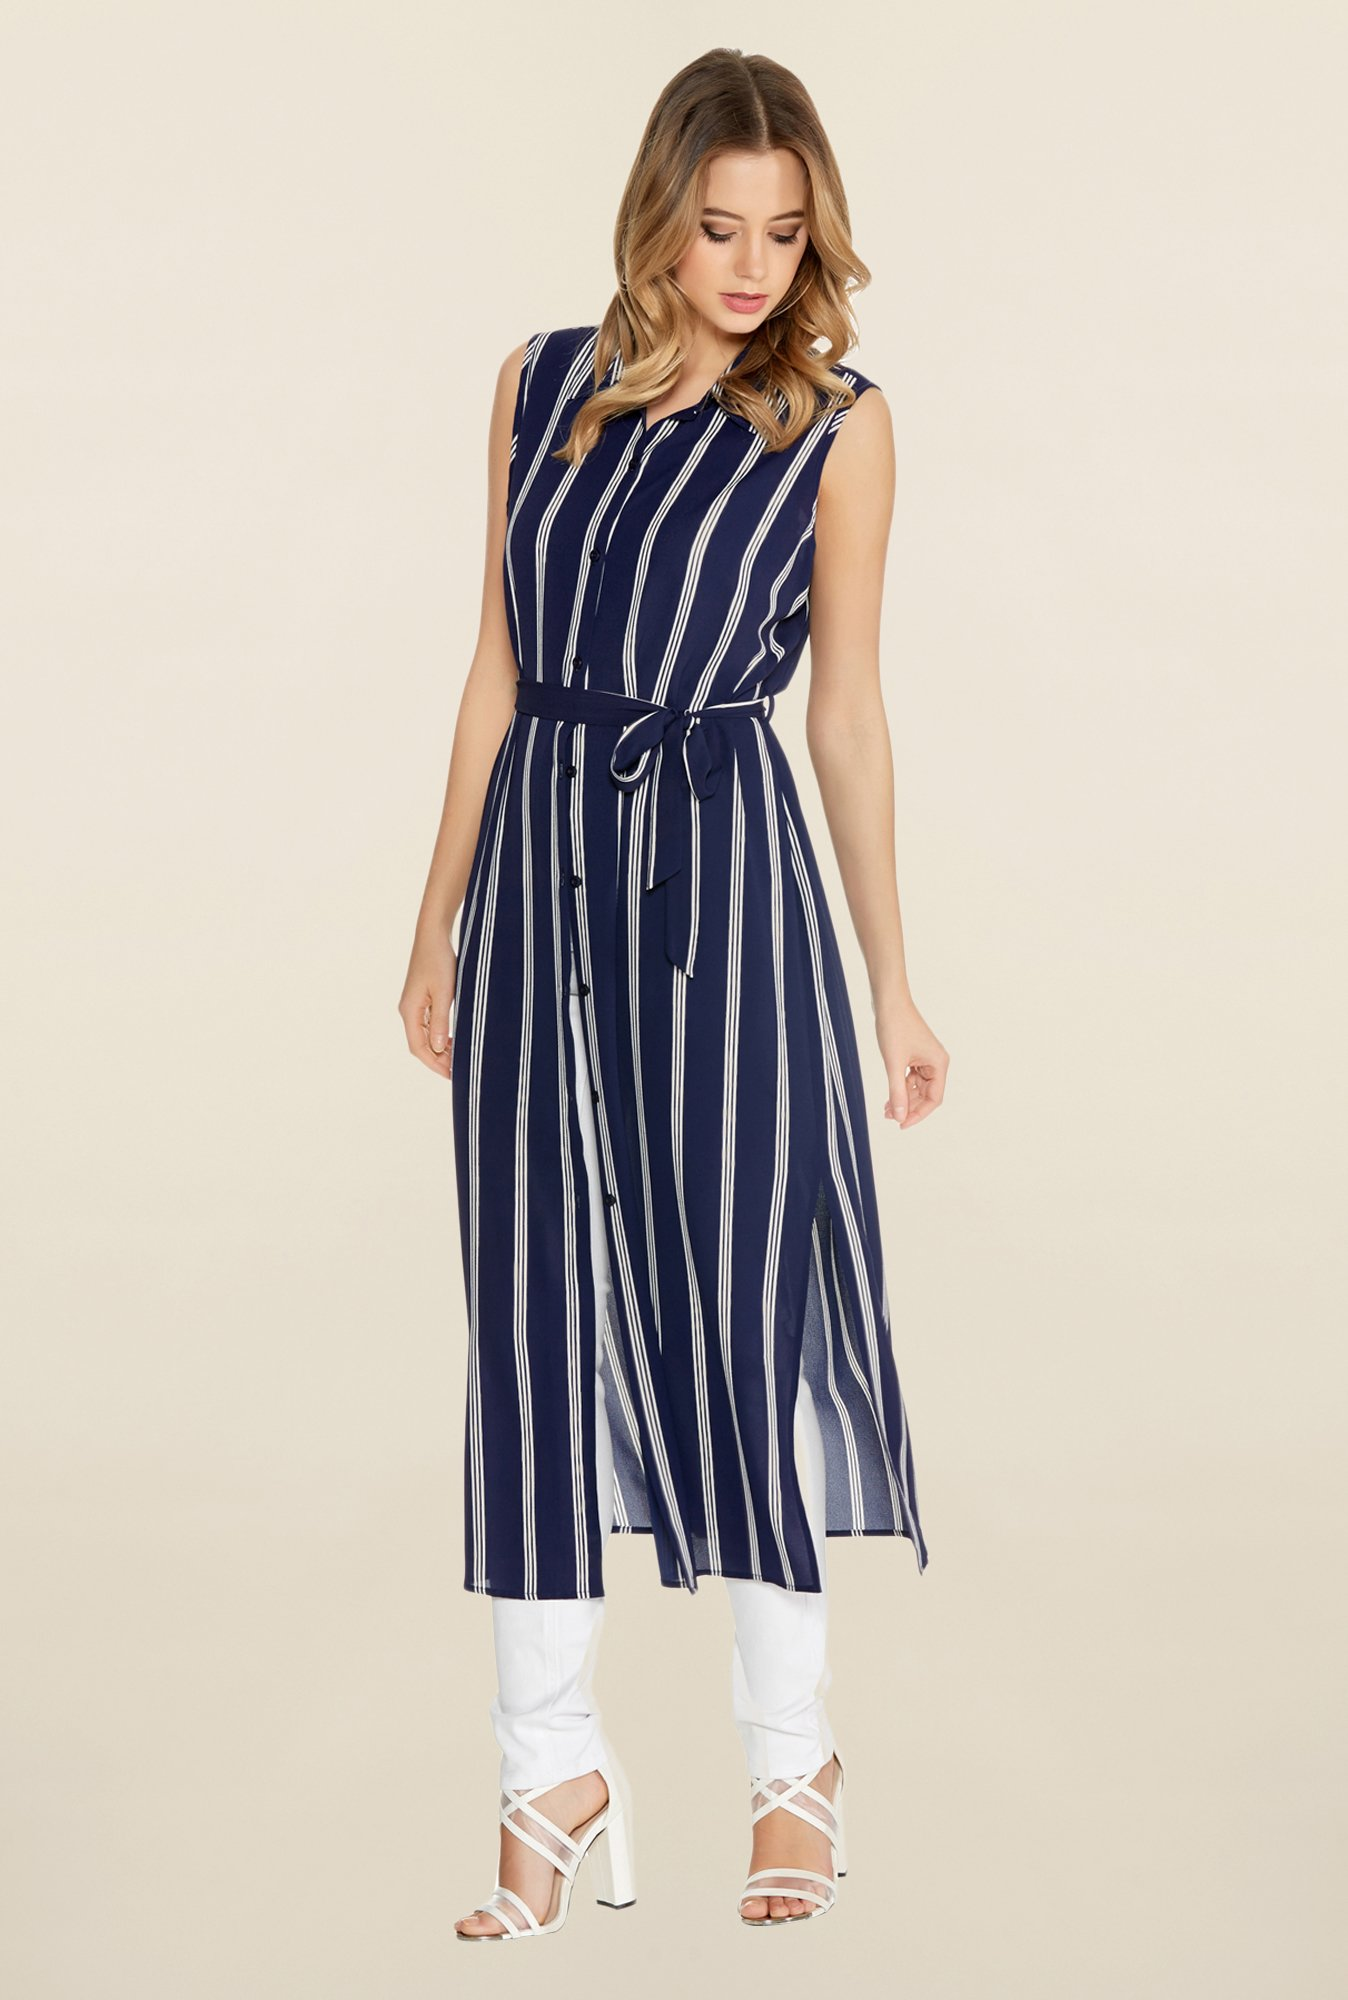 Buy Quiz Navy Cream Striped Shirt Dress Online At Best Price At Tatacliq